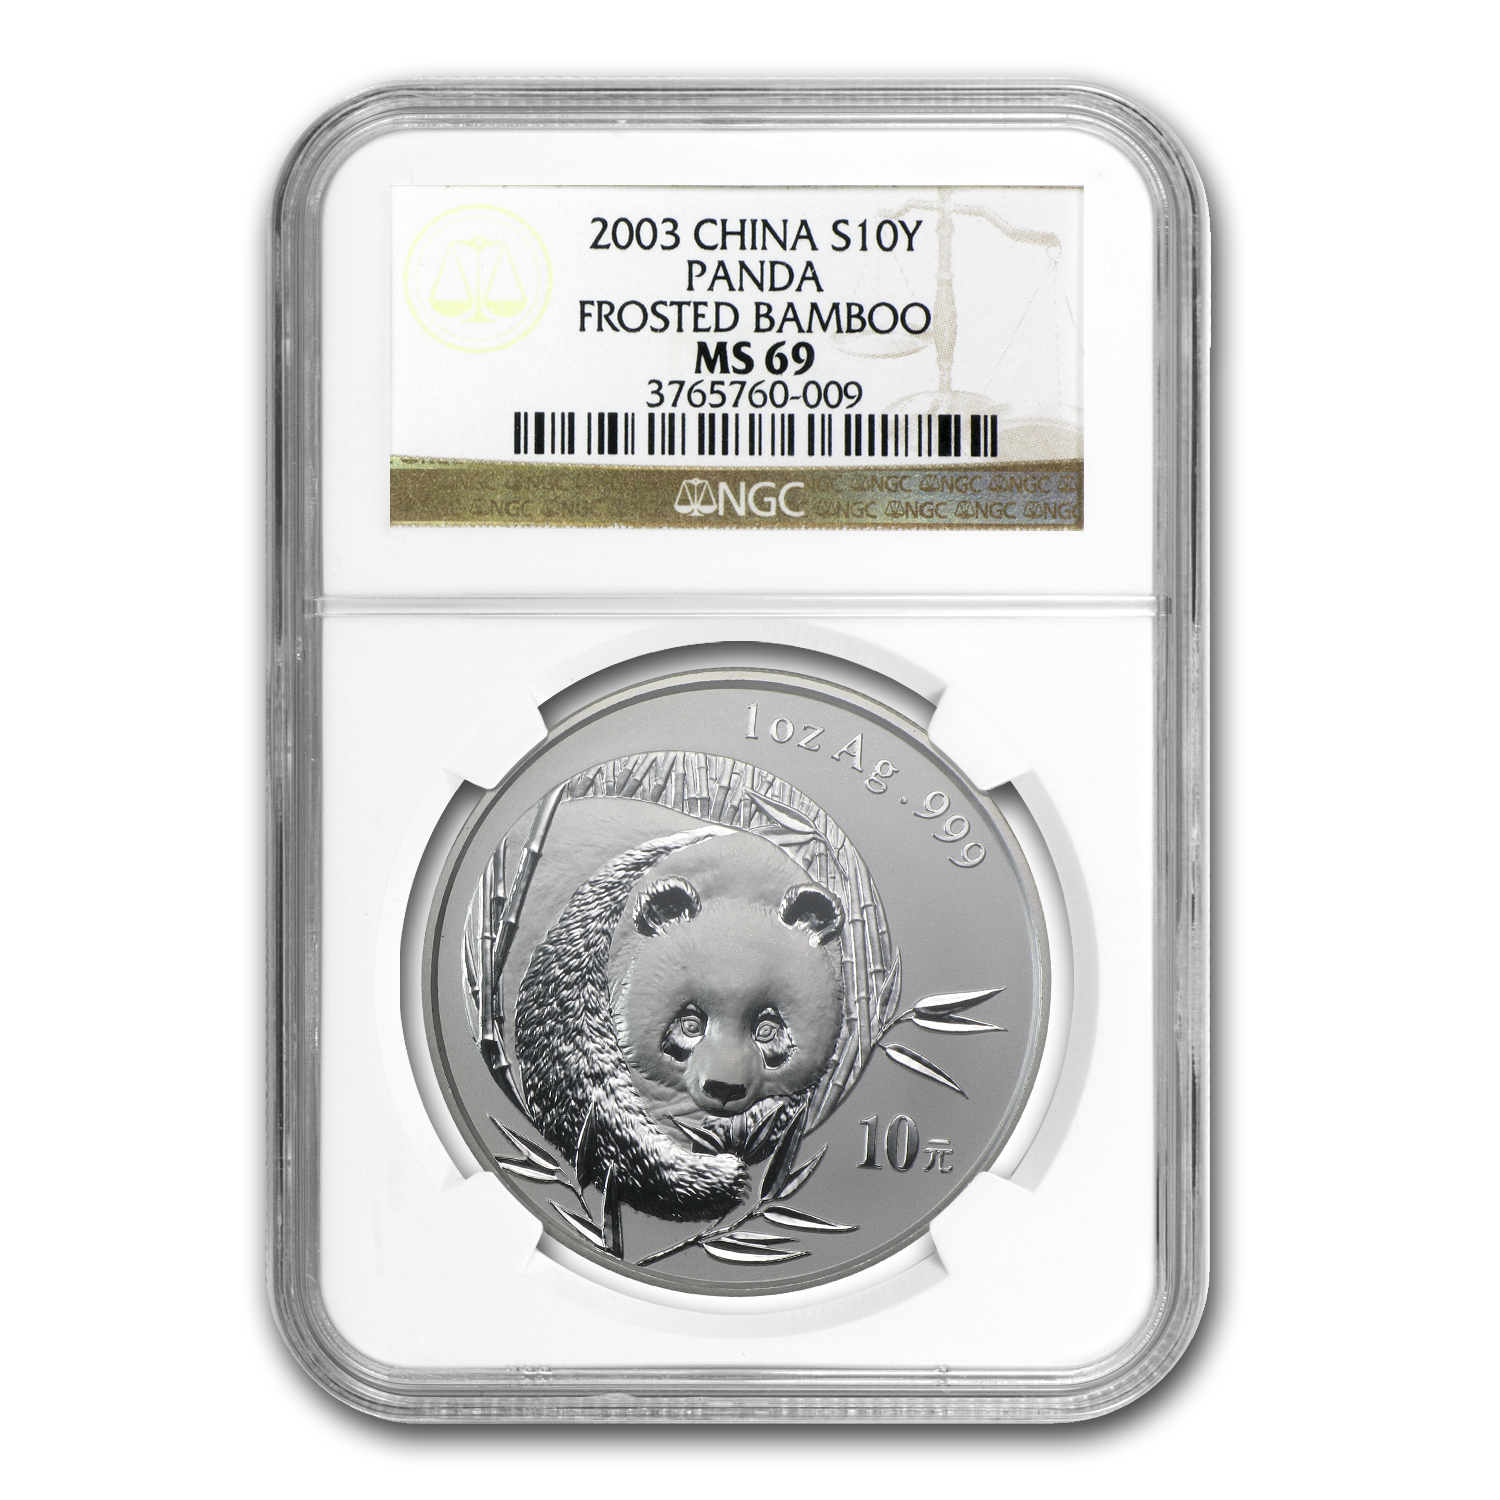 2003 China 1 oz Silver Panda MS-69 NGC (Frosted Bamboo)